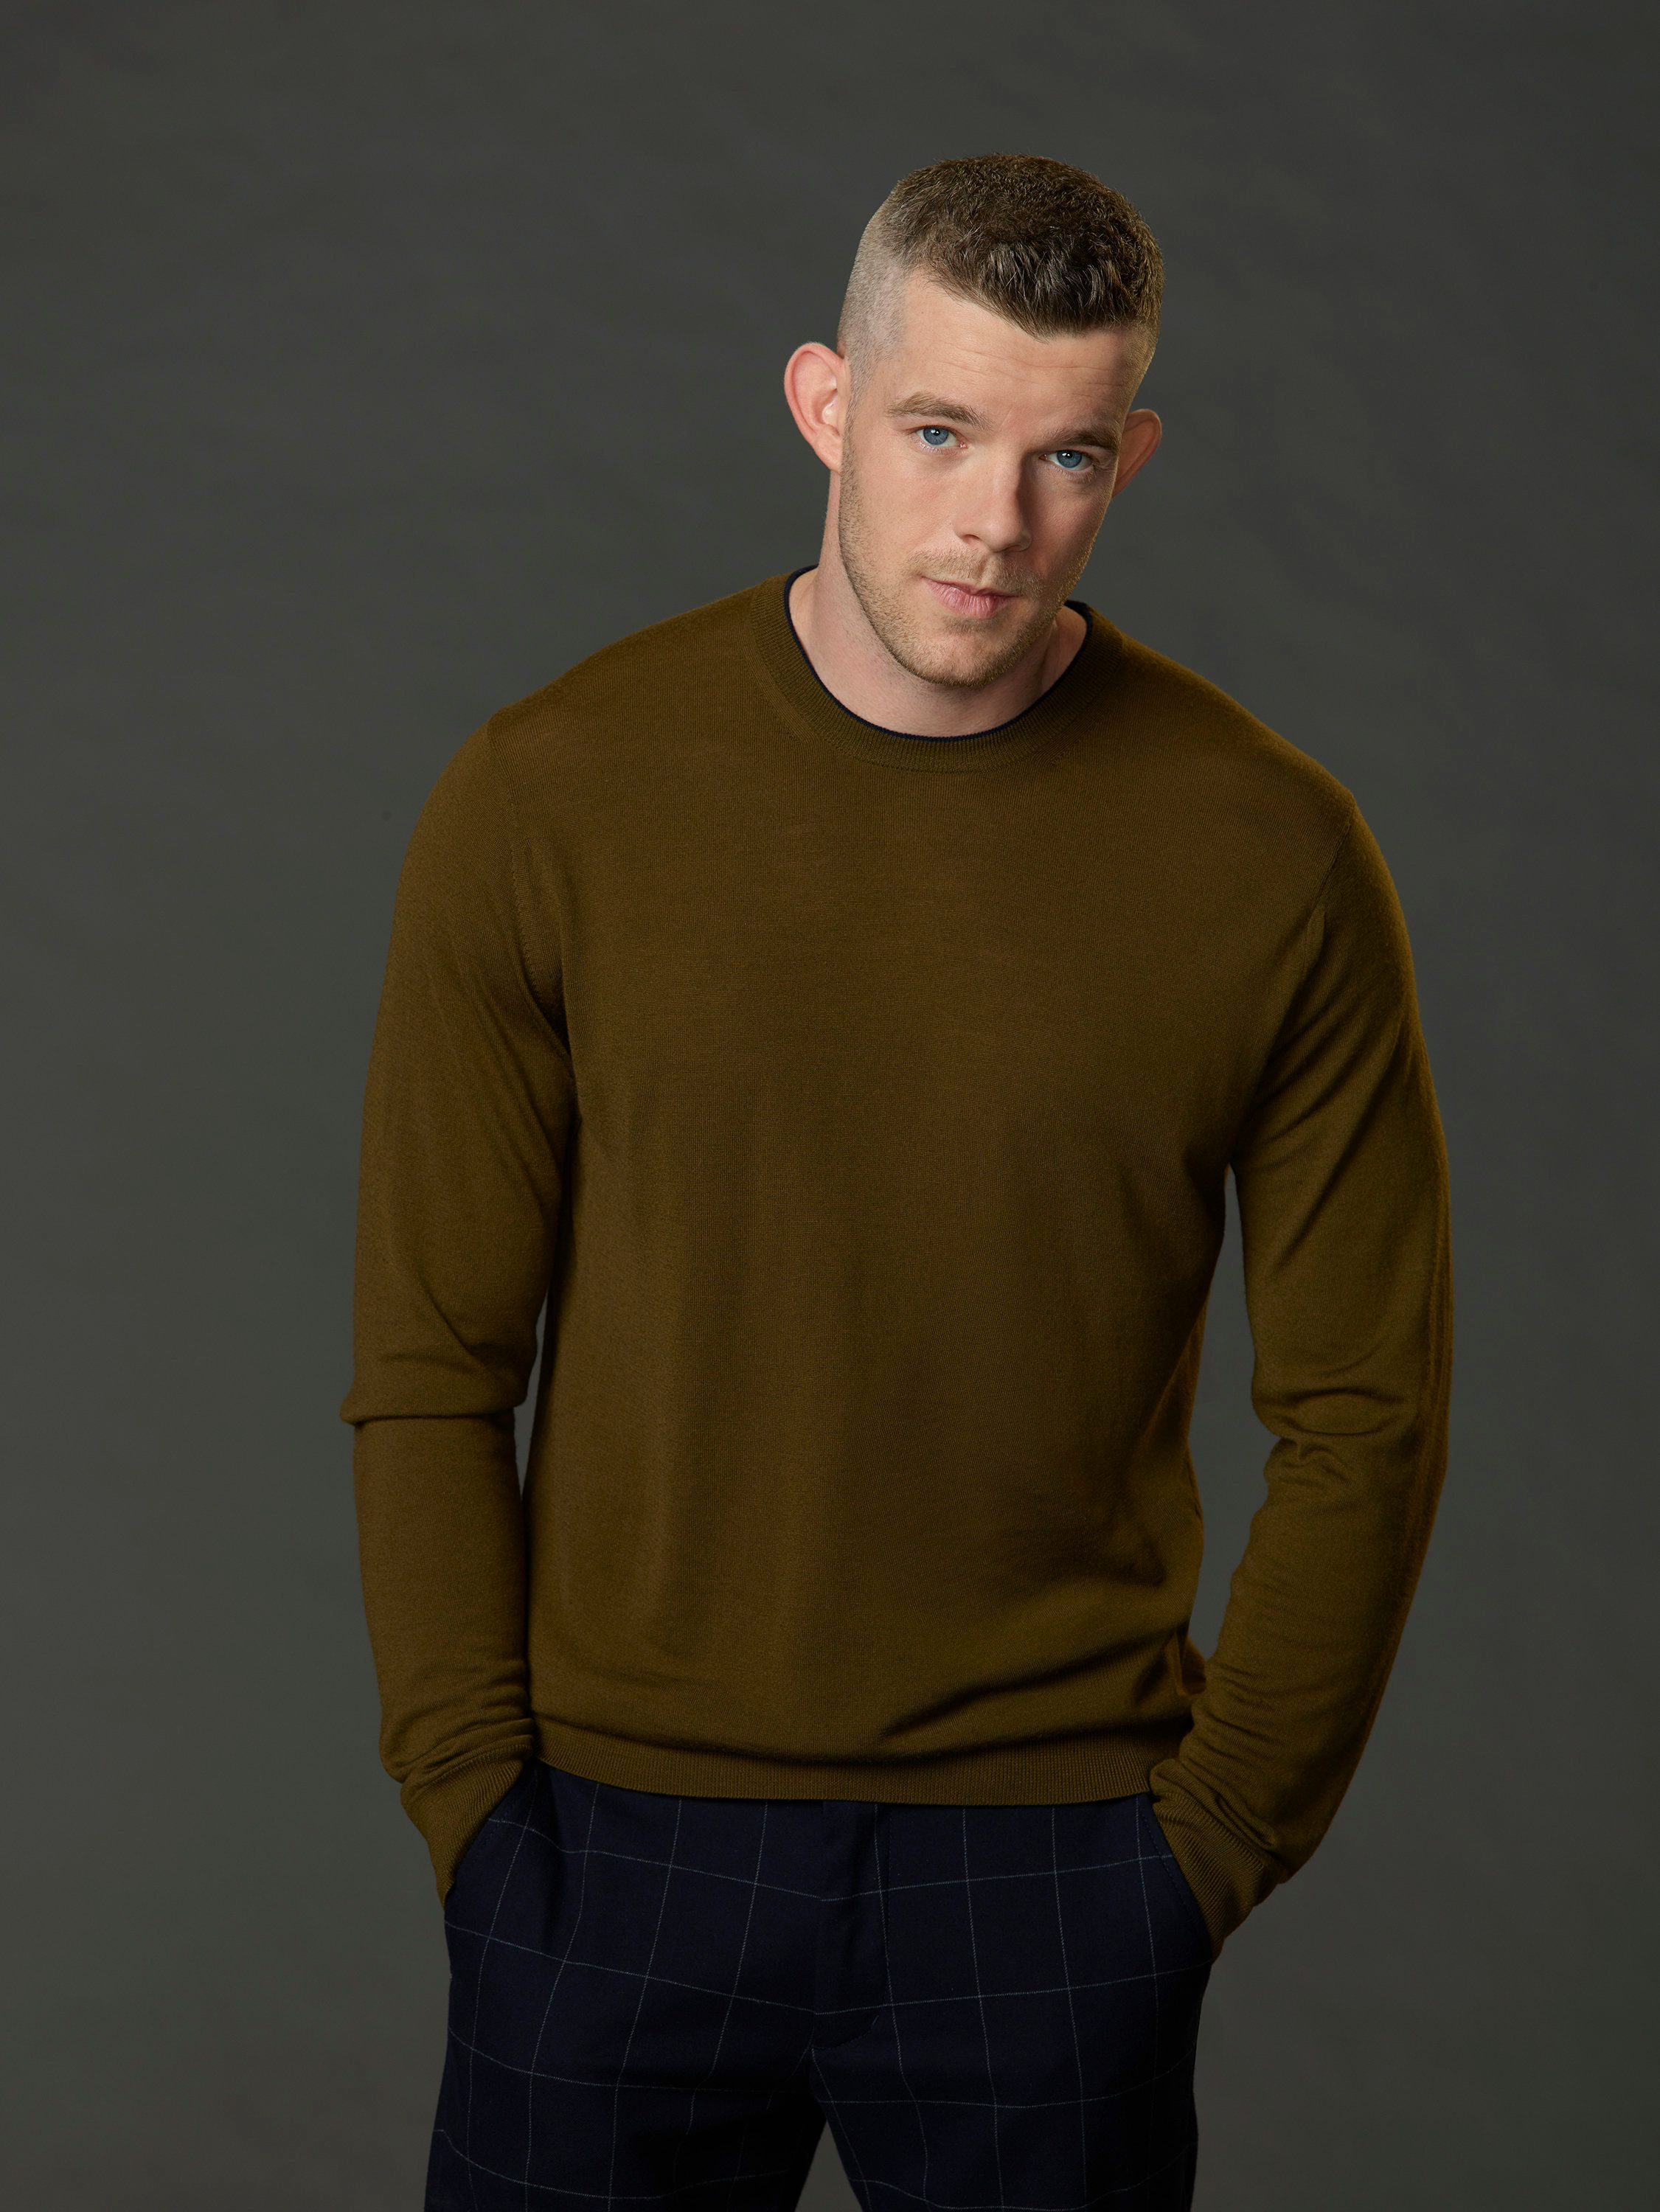 QUANTICO  ABCs 'Quantico' stars Russell Tovey as Harry Doyle. (Bob DAmico/ABC via Getty Images)